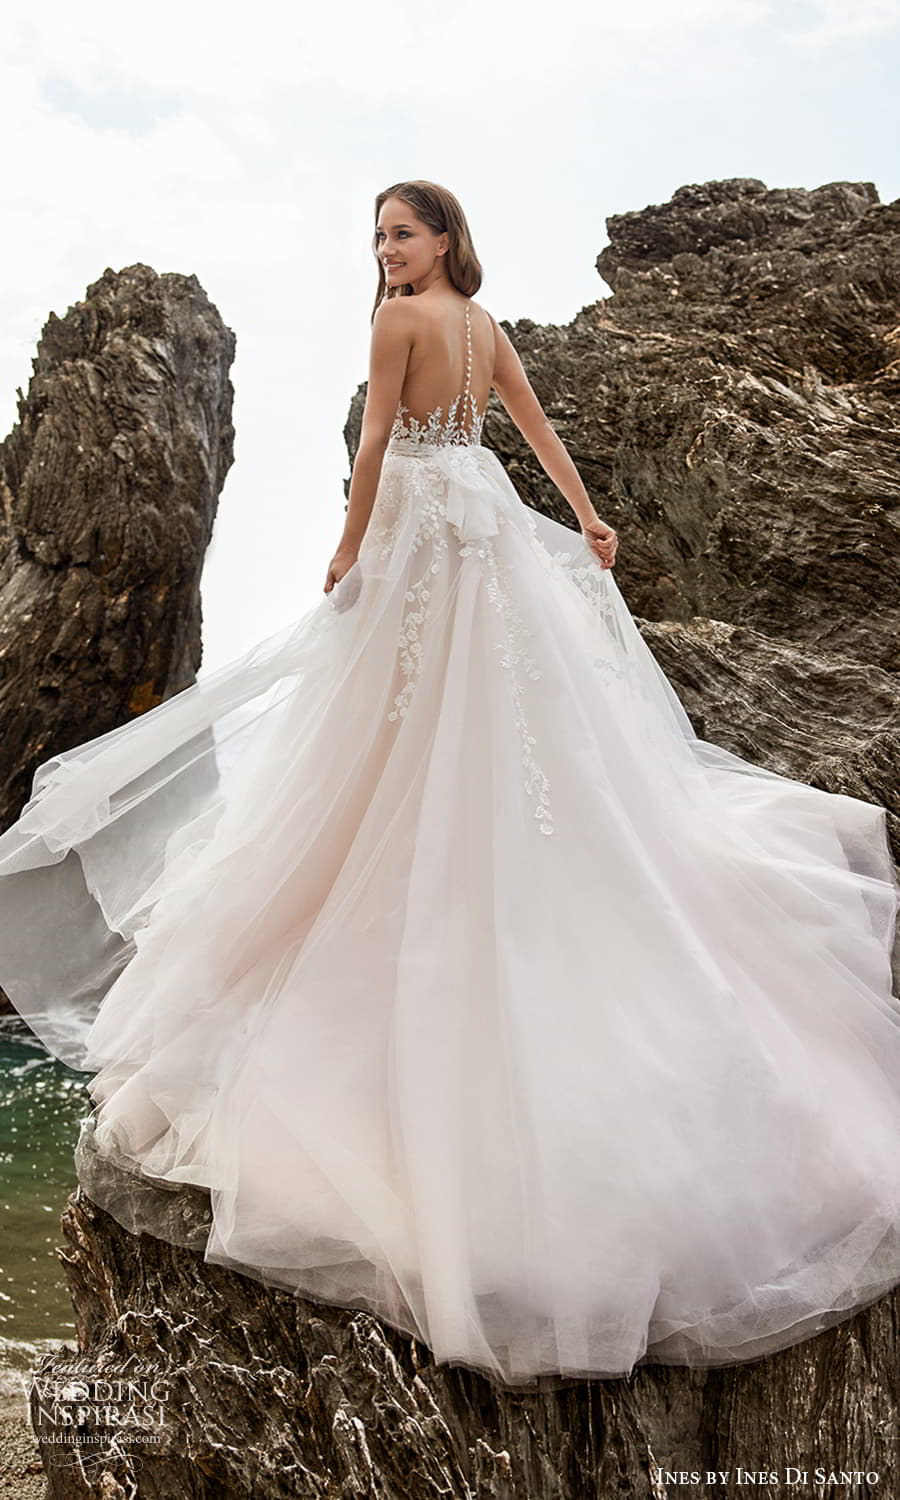 ines ines di santo spring 2022 bridal sleeveless sheer straps sweetheart neckline embellished bodice a line ball gown wedding drses sheer back (14) mv